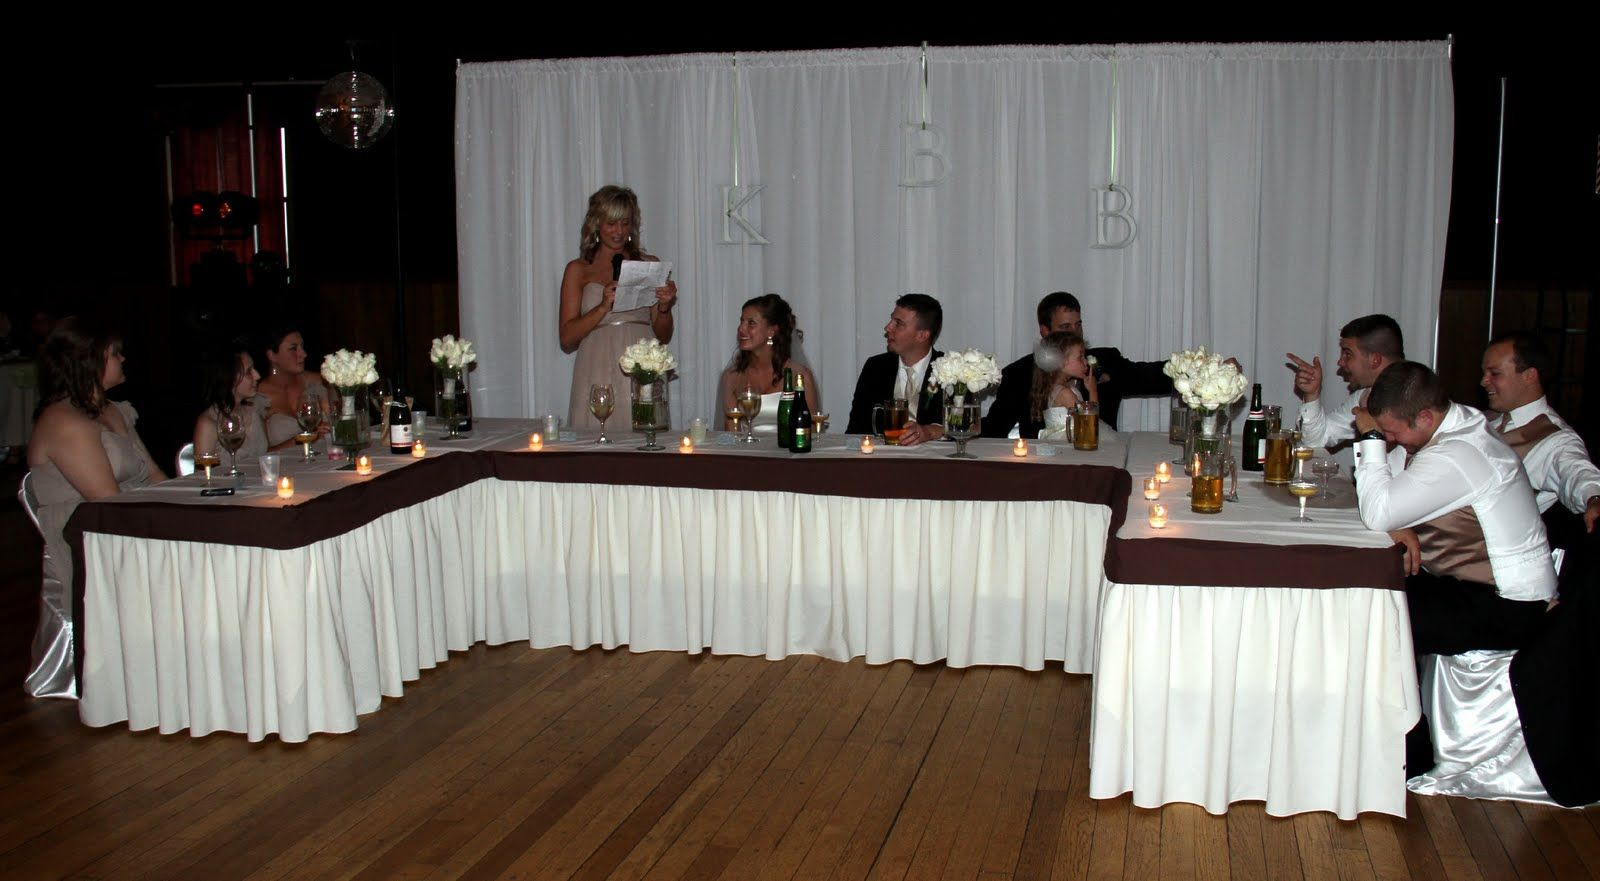 Head Table I Like The Cake Behind The Head Table So You: Wedding Reception Rectangle Tables